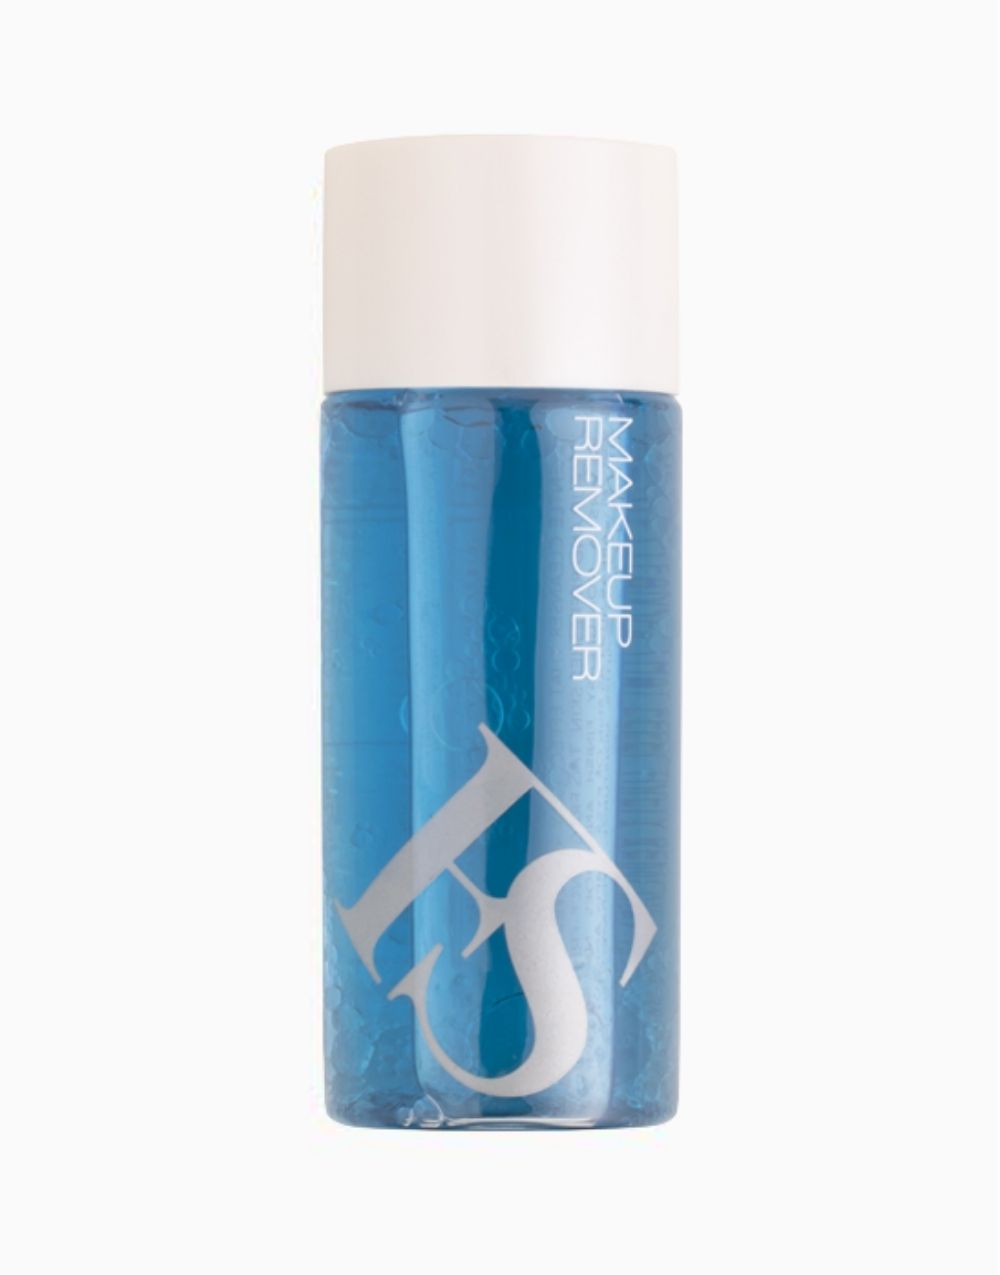 FS Makeup Remover by FS Features & Shades